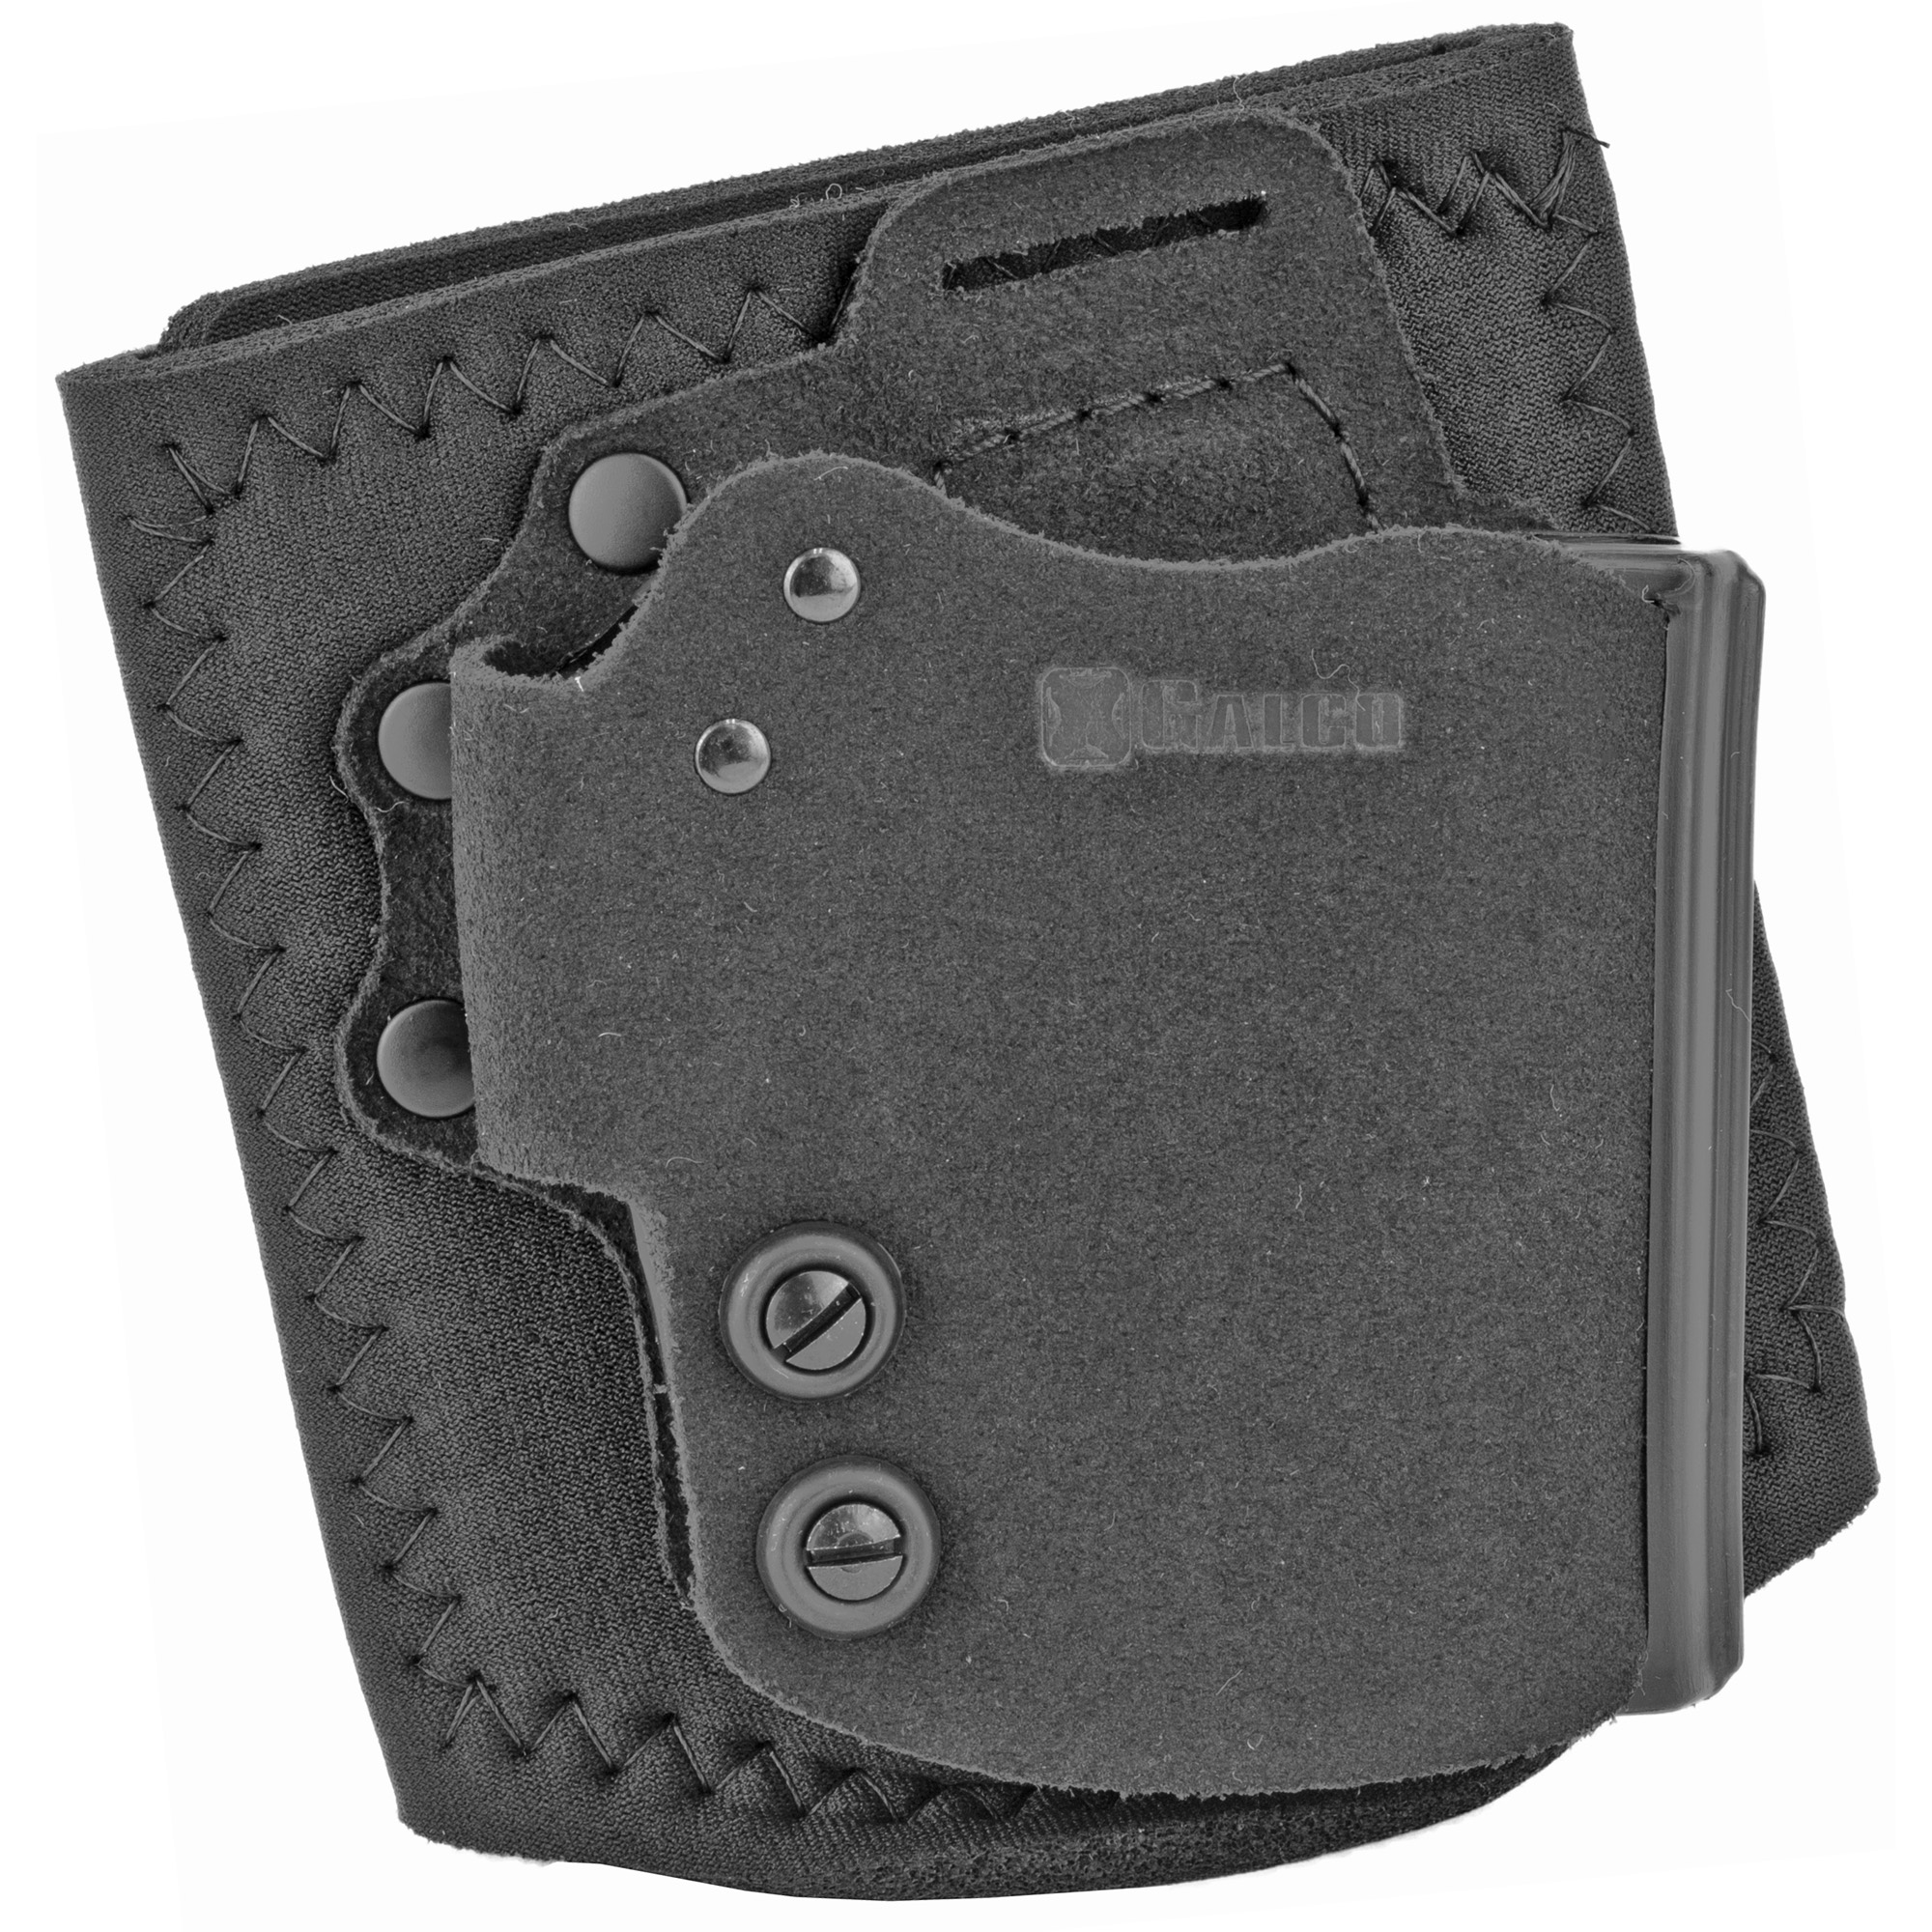 Galco Ankle Guard Shield Rh Blk